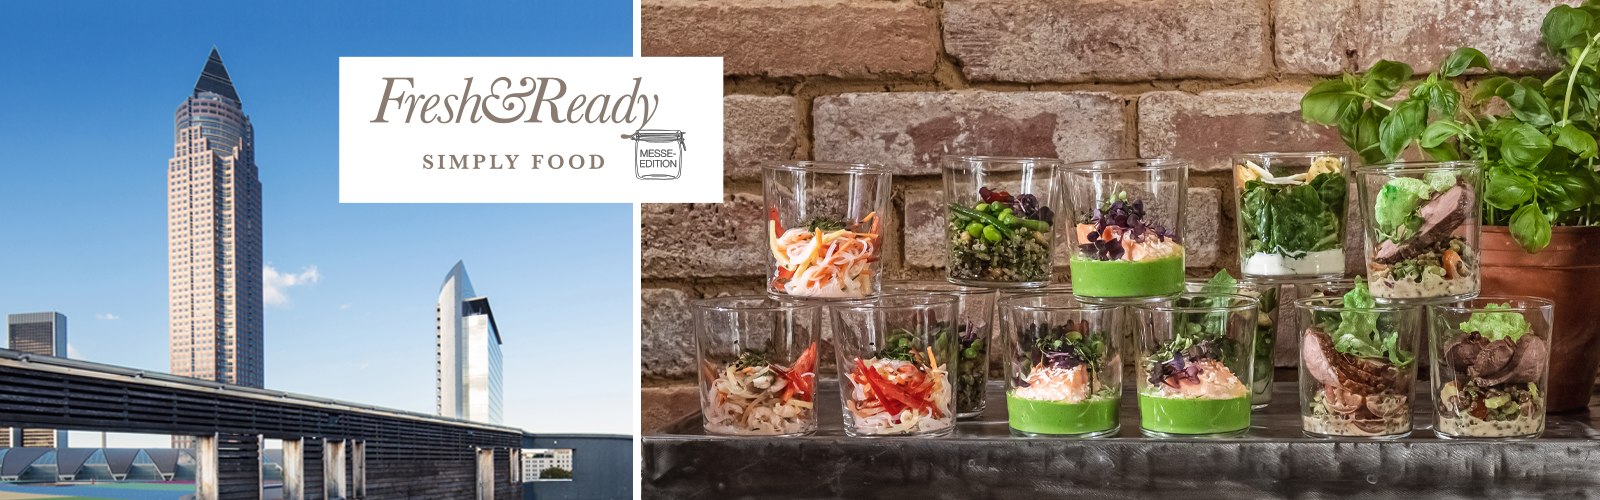 fps catering messe header fresh+ready